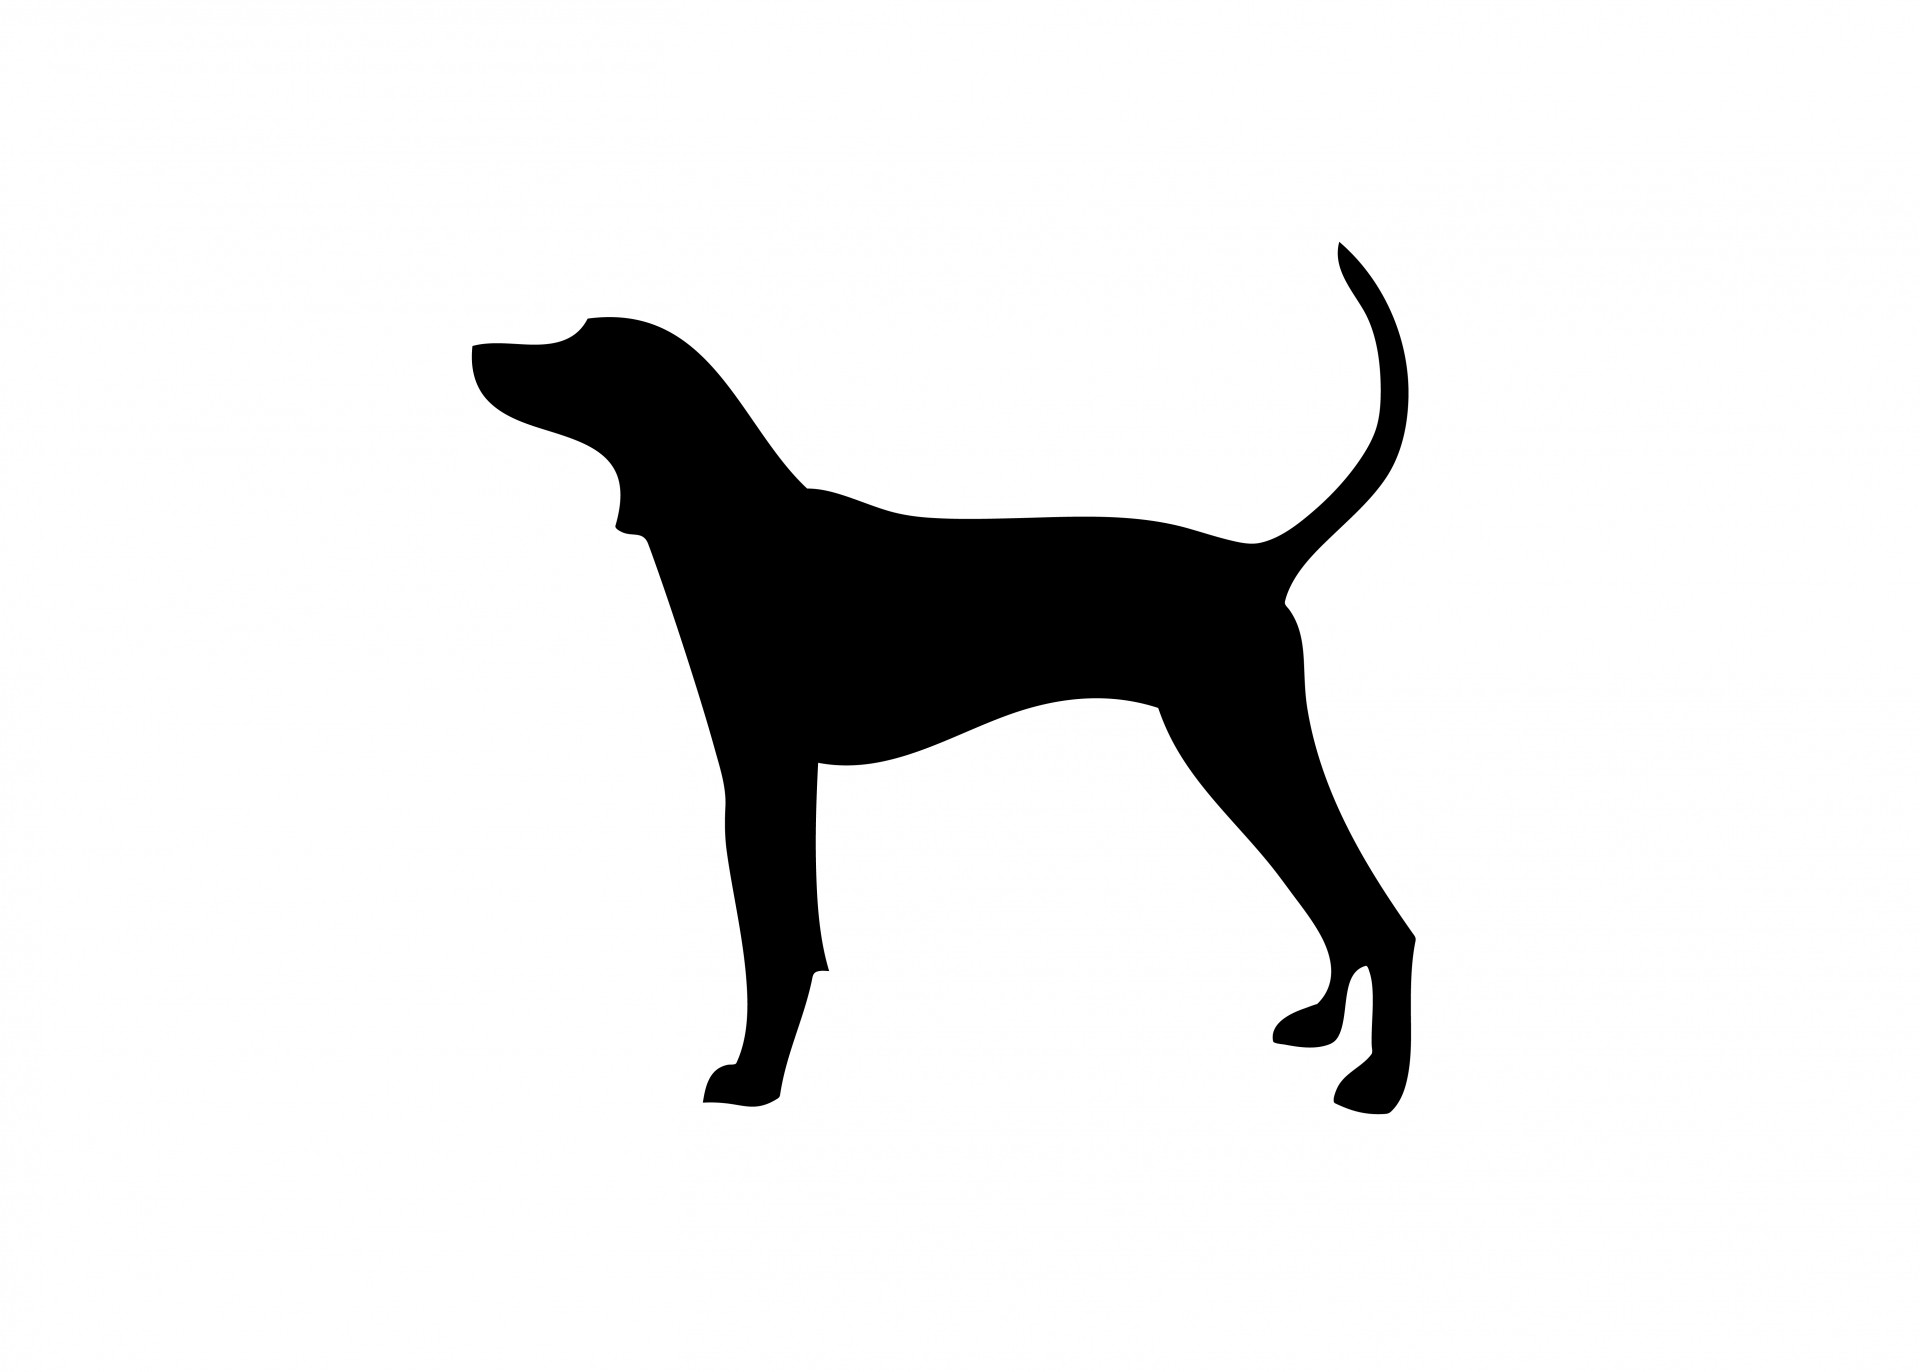 1920x1372 Dog Silhouette Free Stock Photo